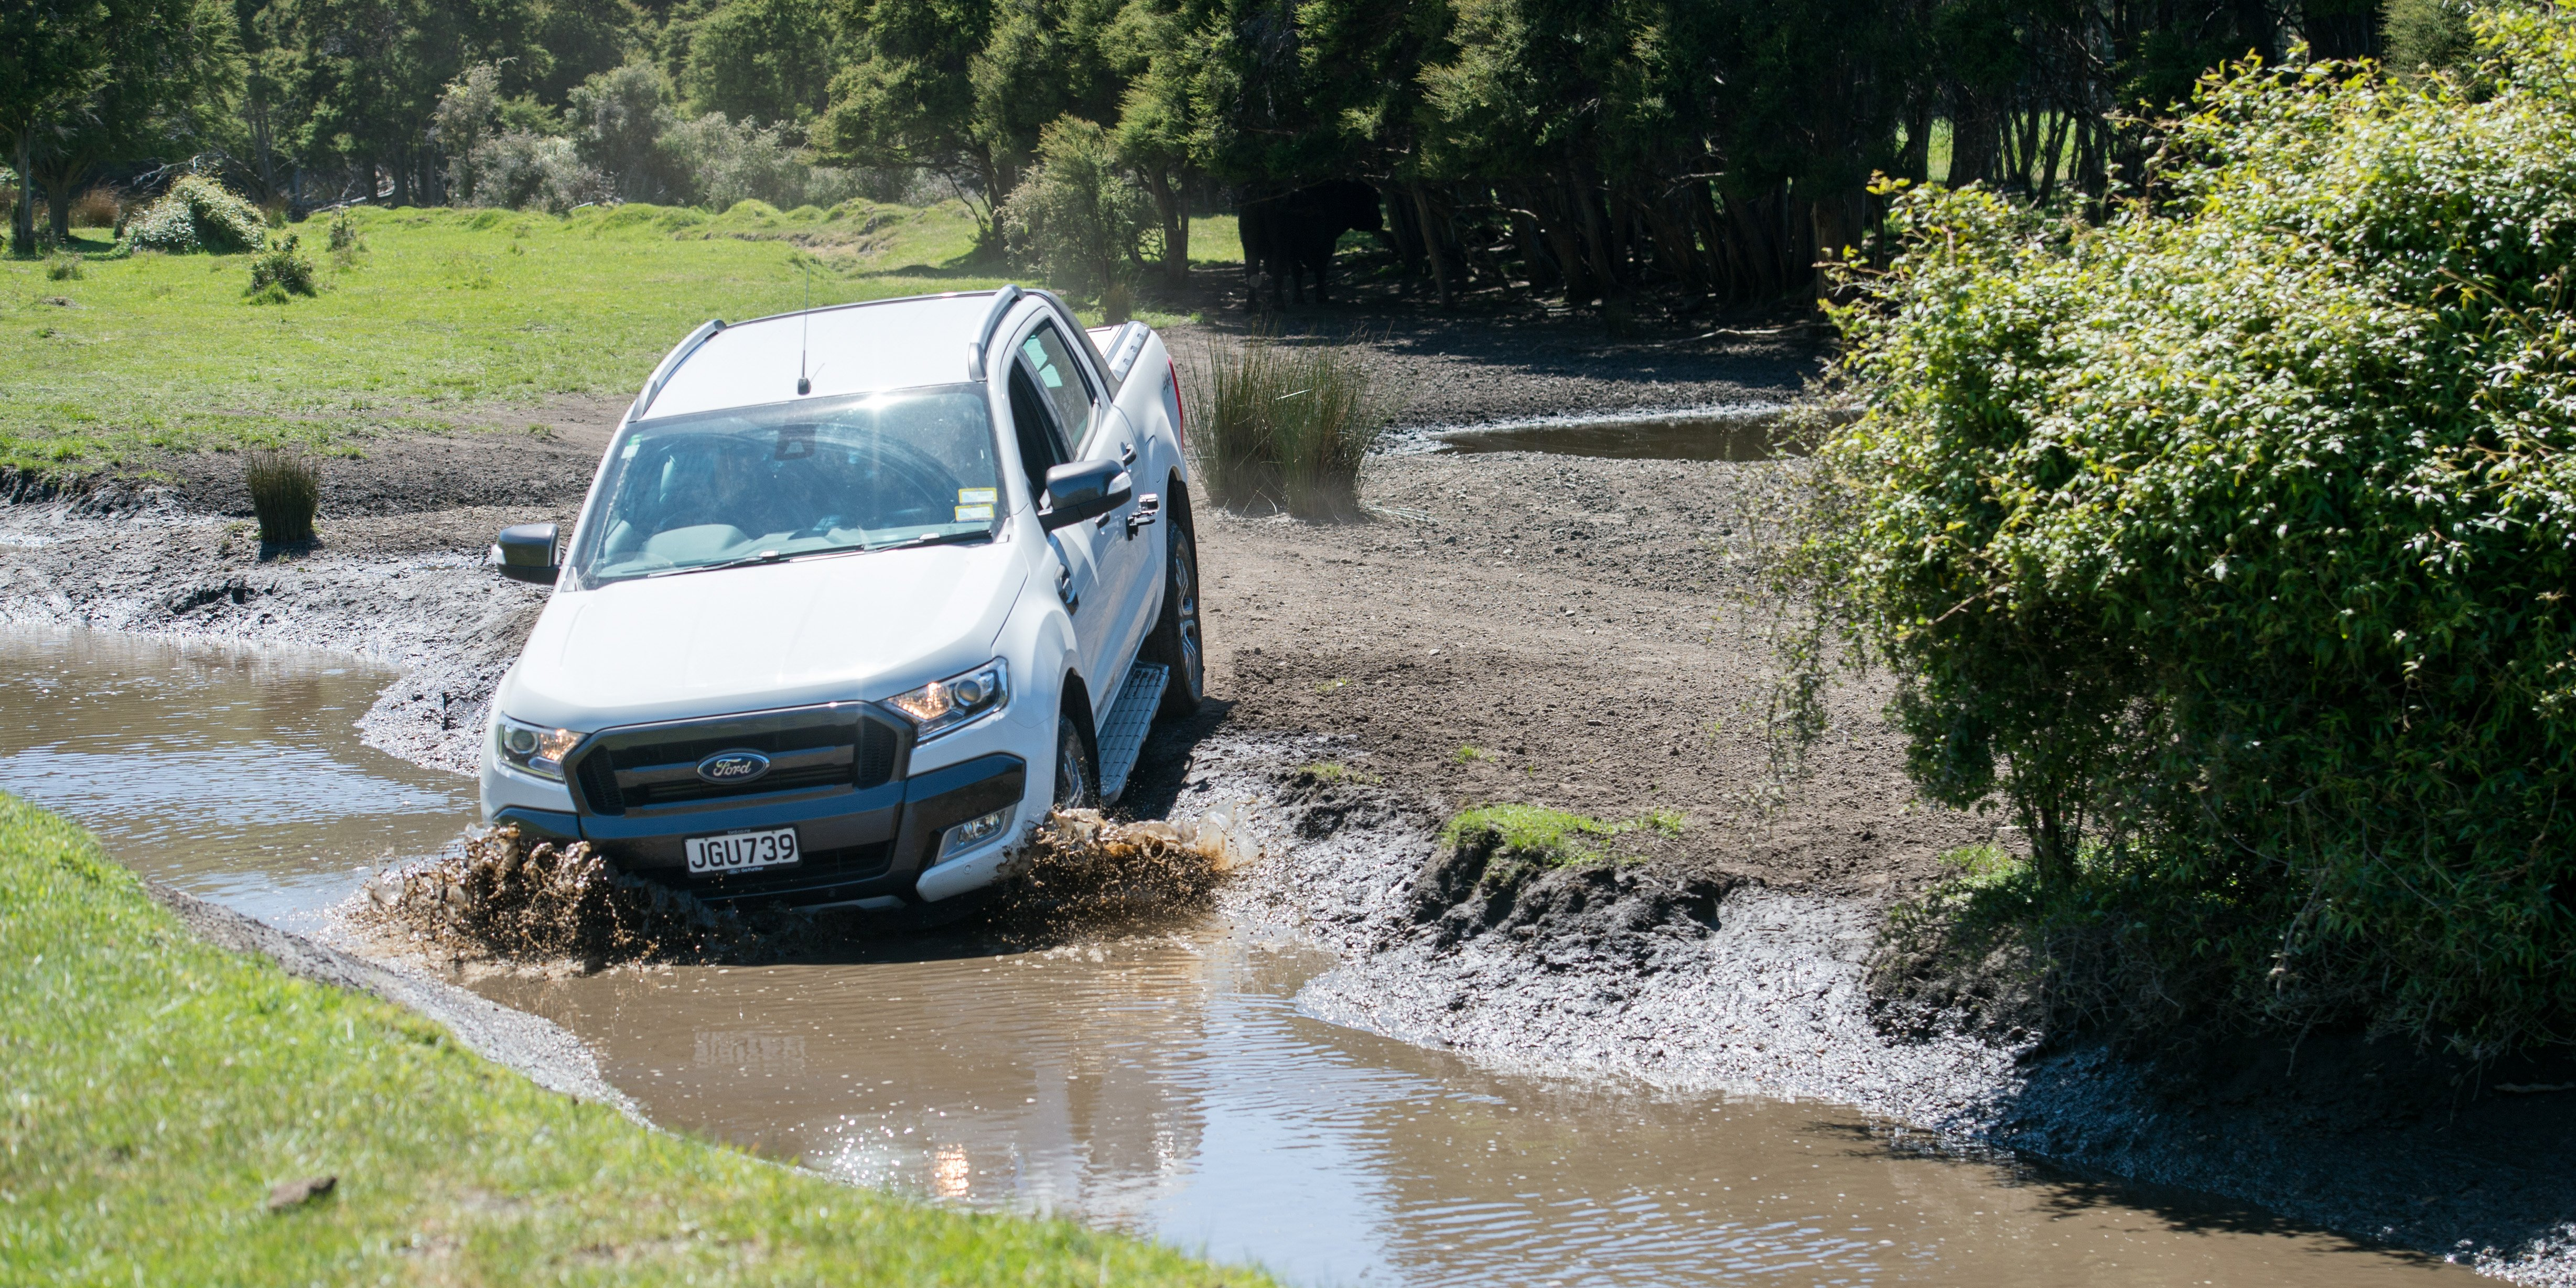 Beautiful 2016 Ford Ranger  Lifestyle Adventure In New Zealand